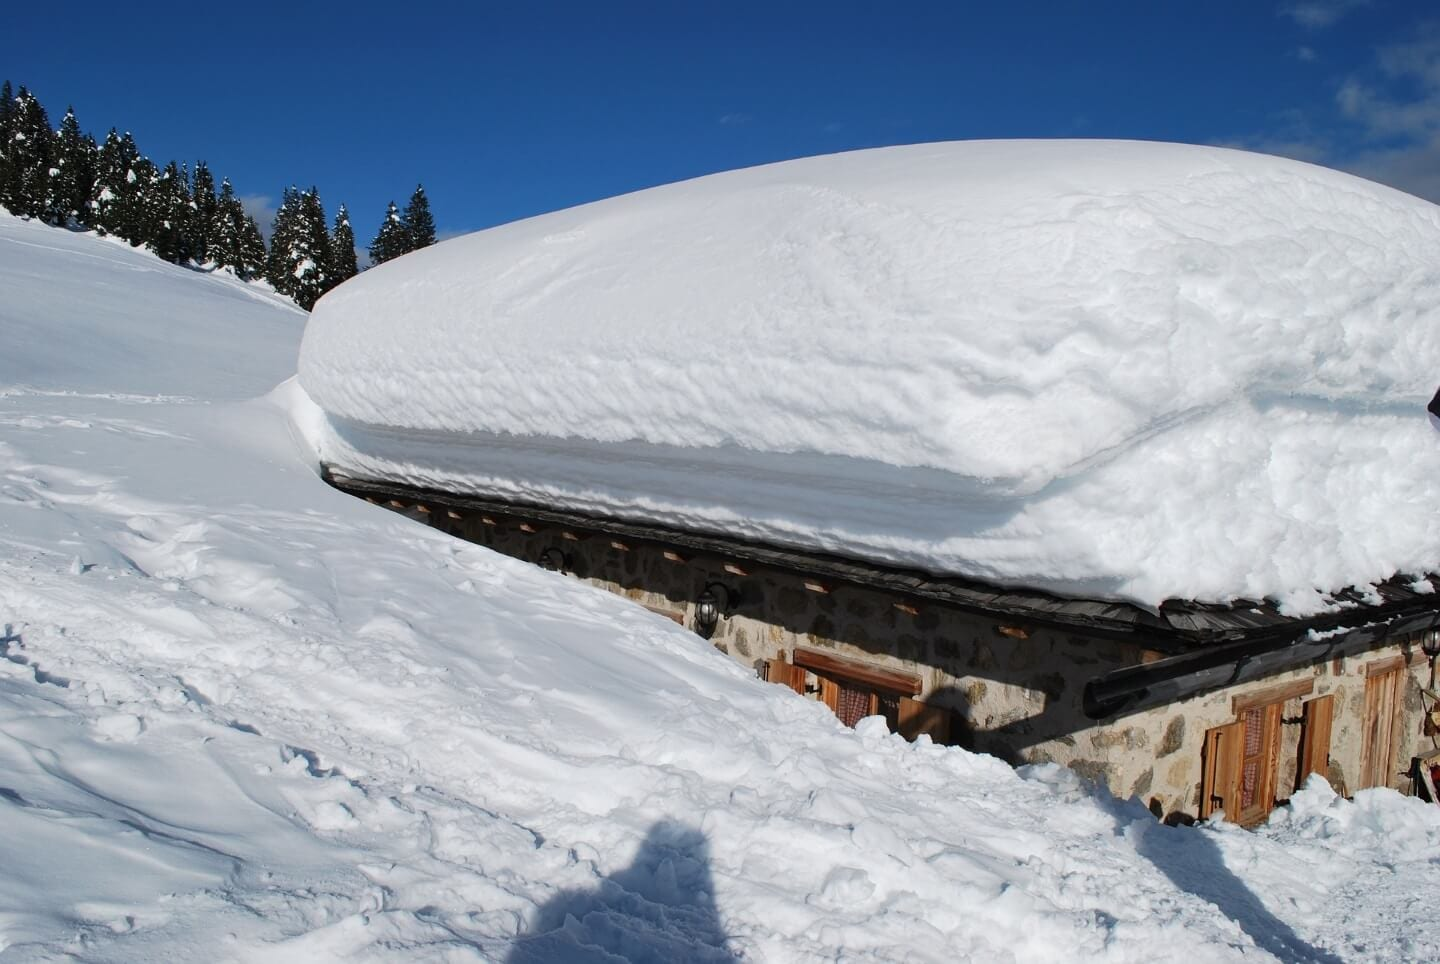 snow-caved-in-roof